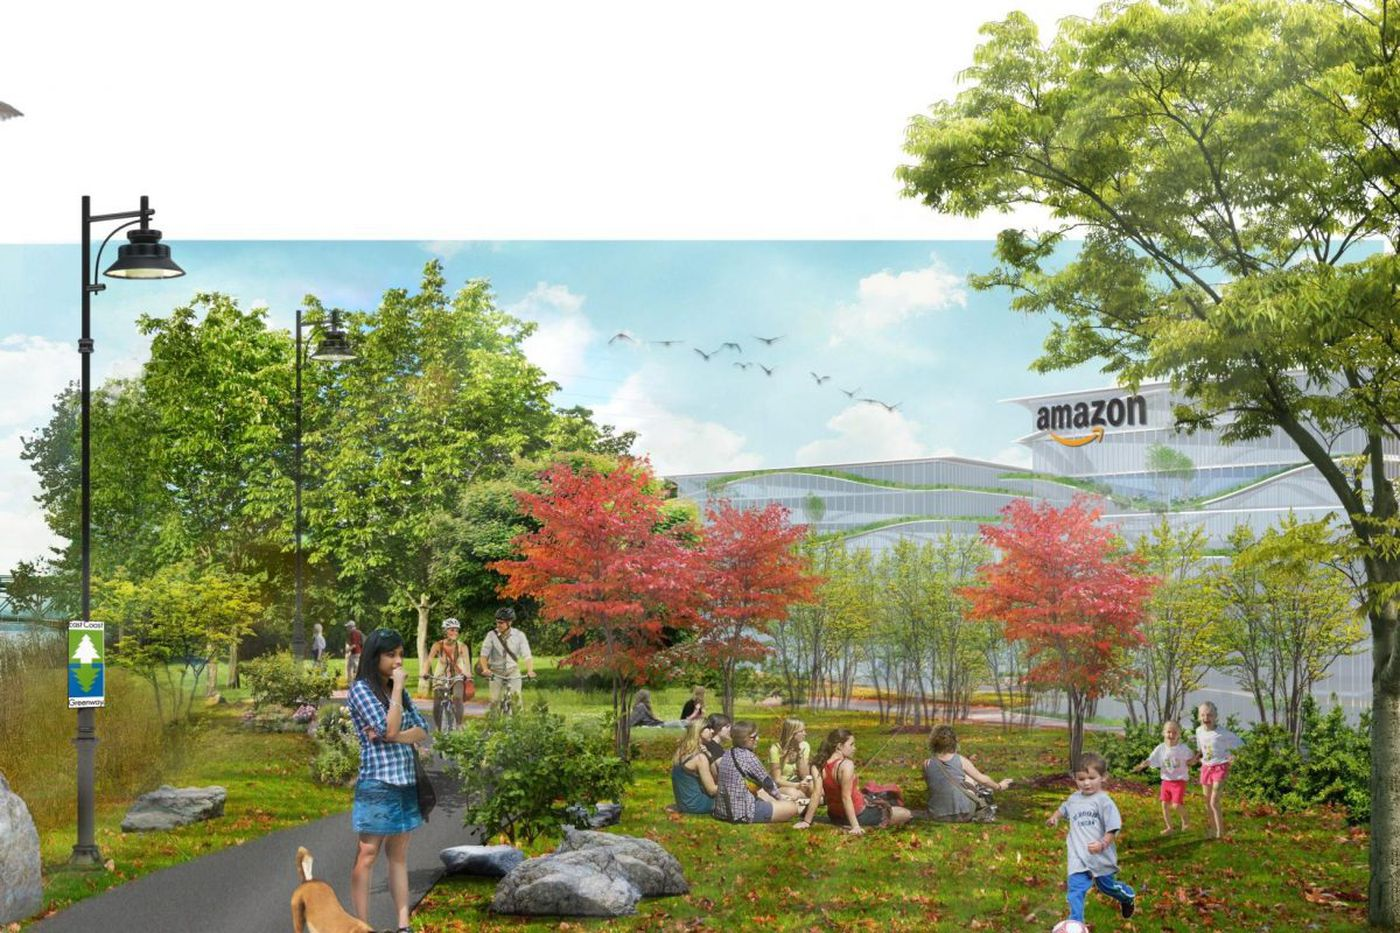 Add Bristol Township to the list of Philly neighbors vying for Amazon's HQ2